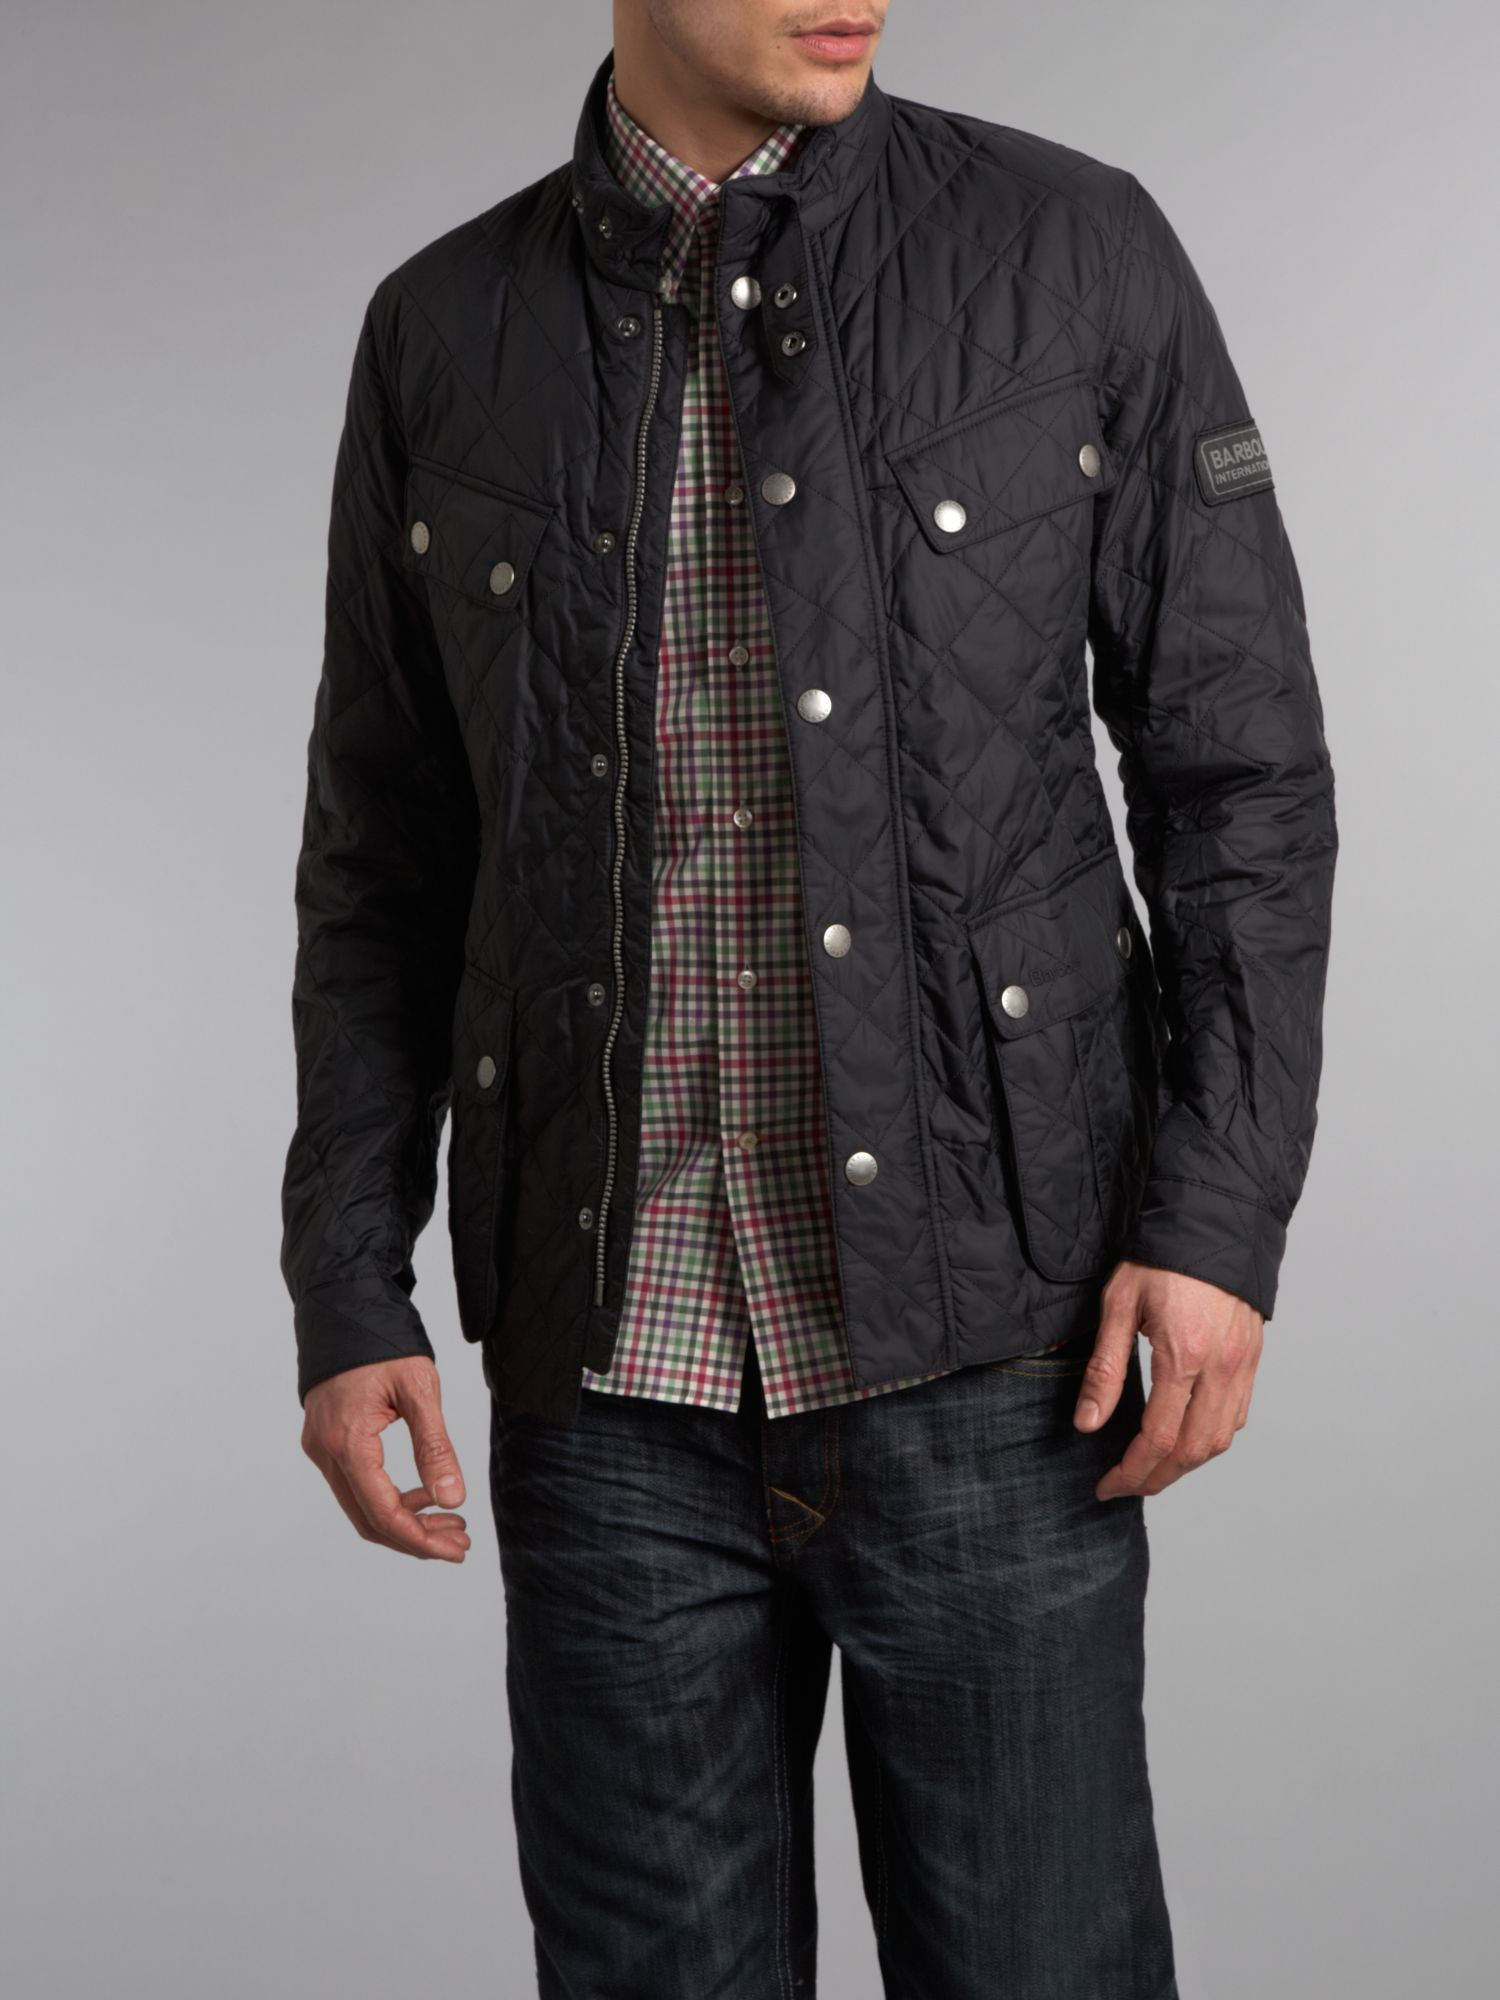 Barbour Ariel Quilted Jacket In Black For Men Lyst